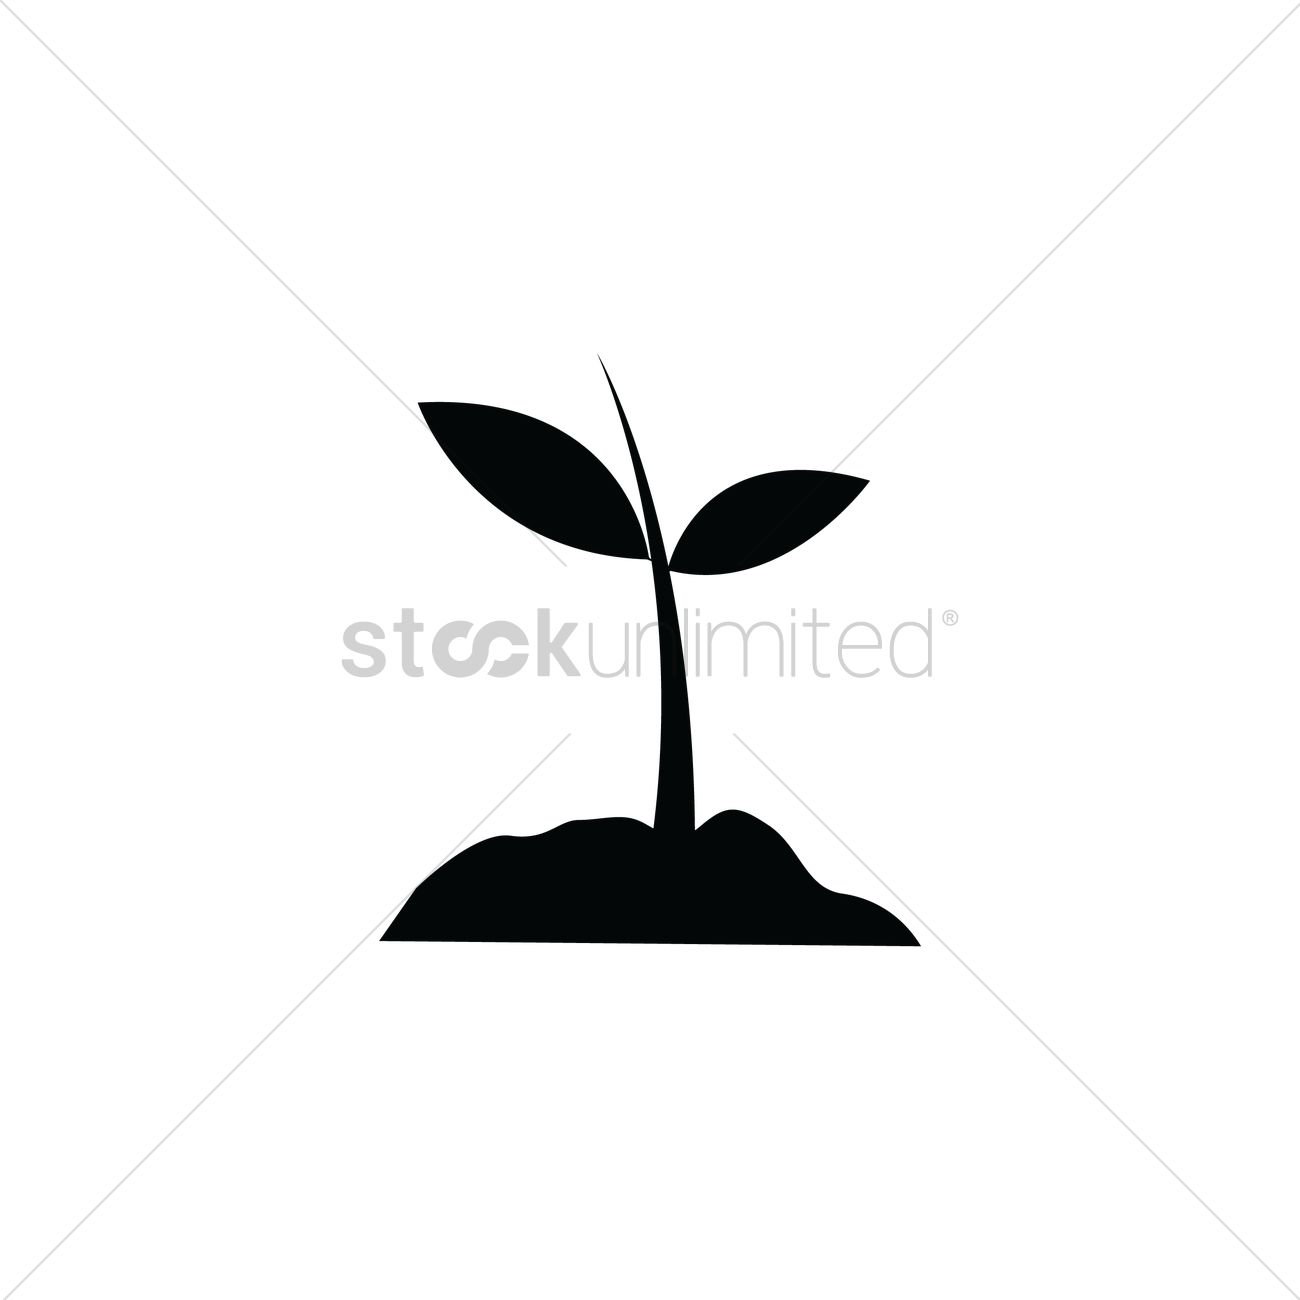 Silhouette Of Plant Vector Image